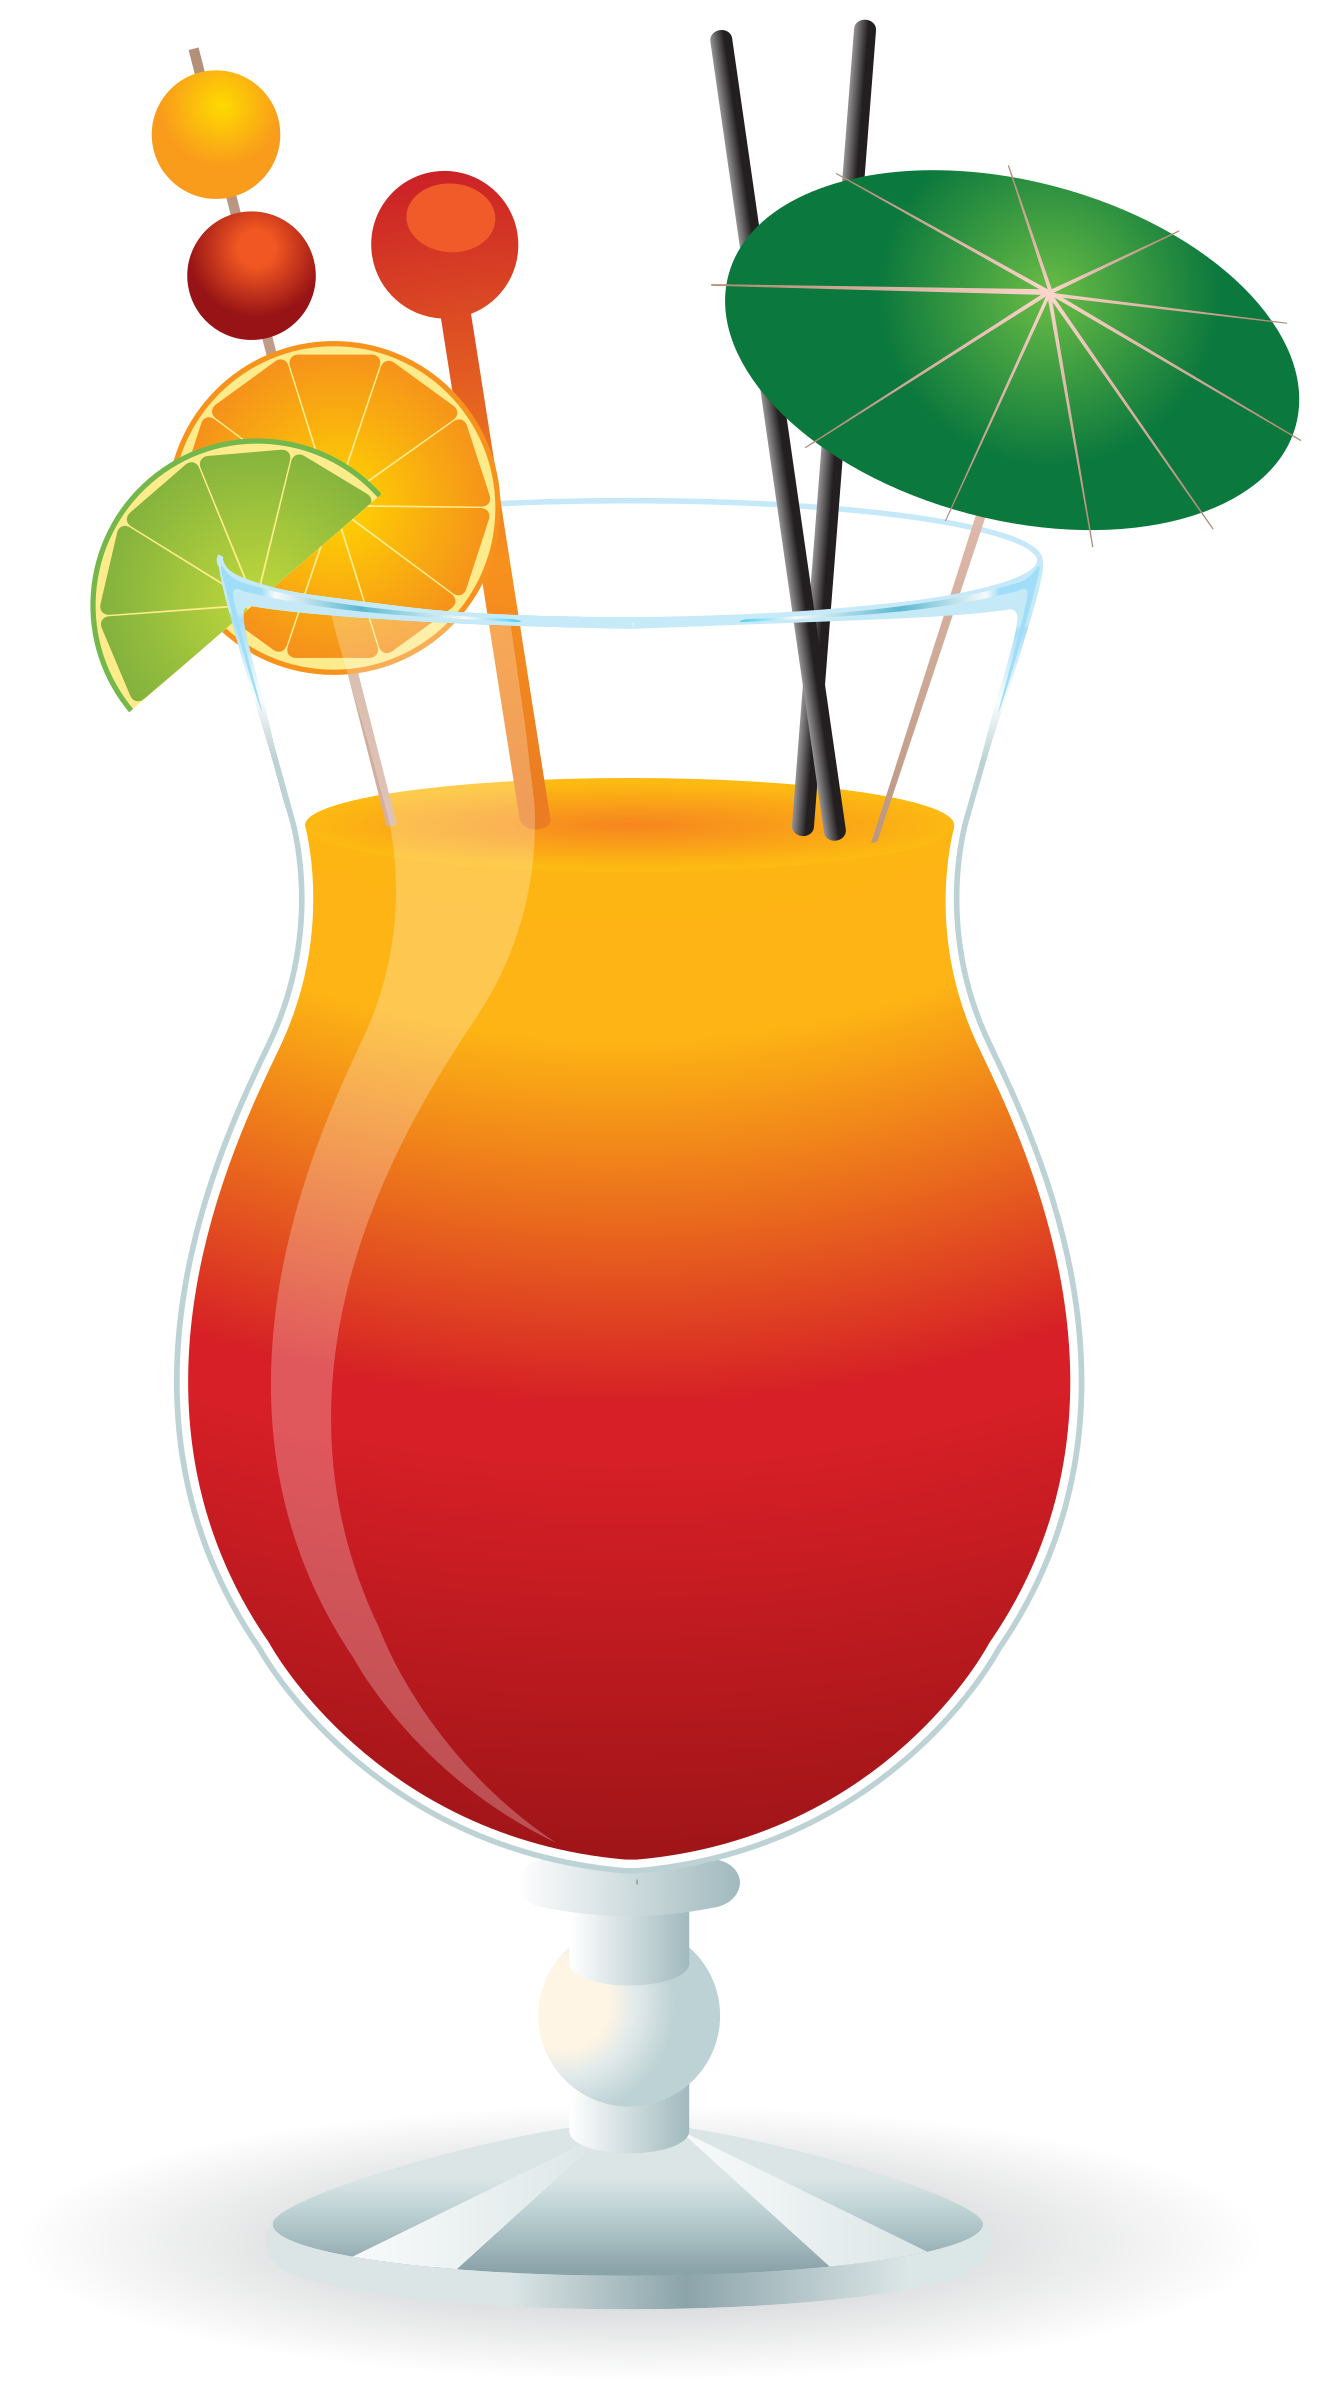 Cocktail glass by floedelmann. December clipart holiday drink